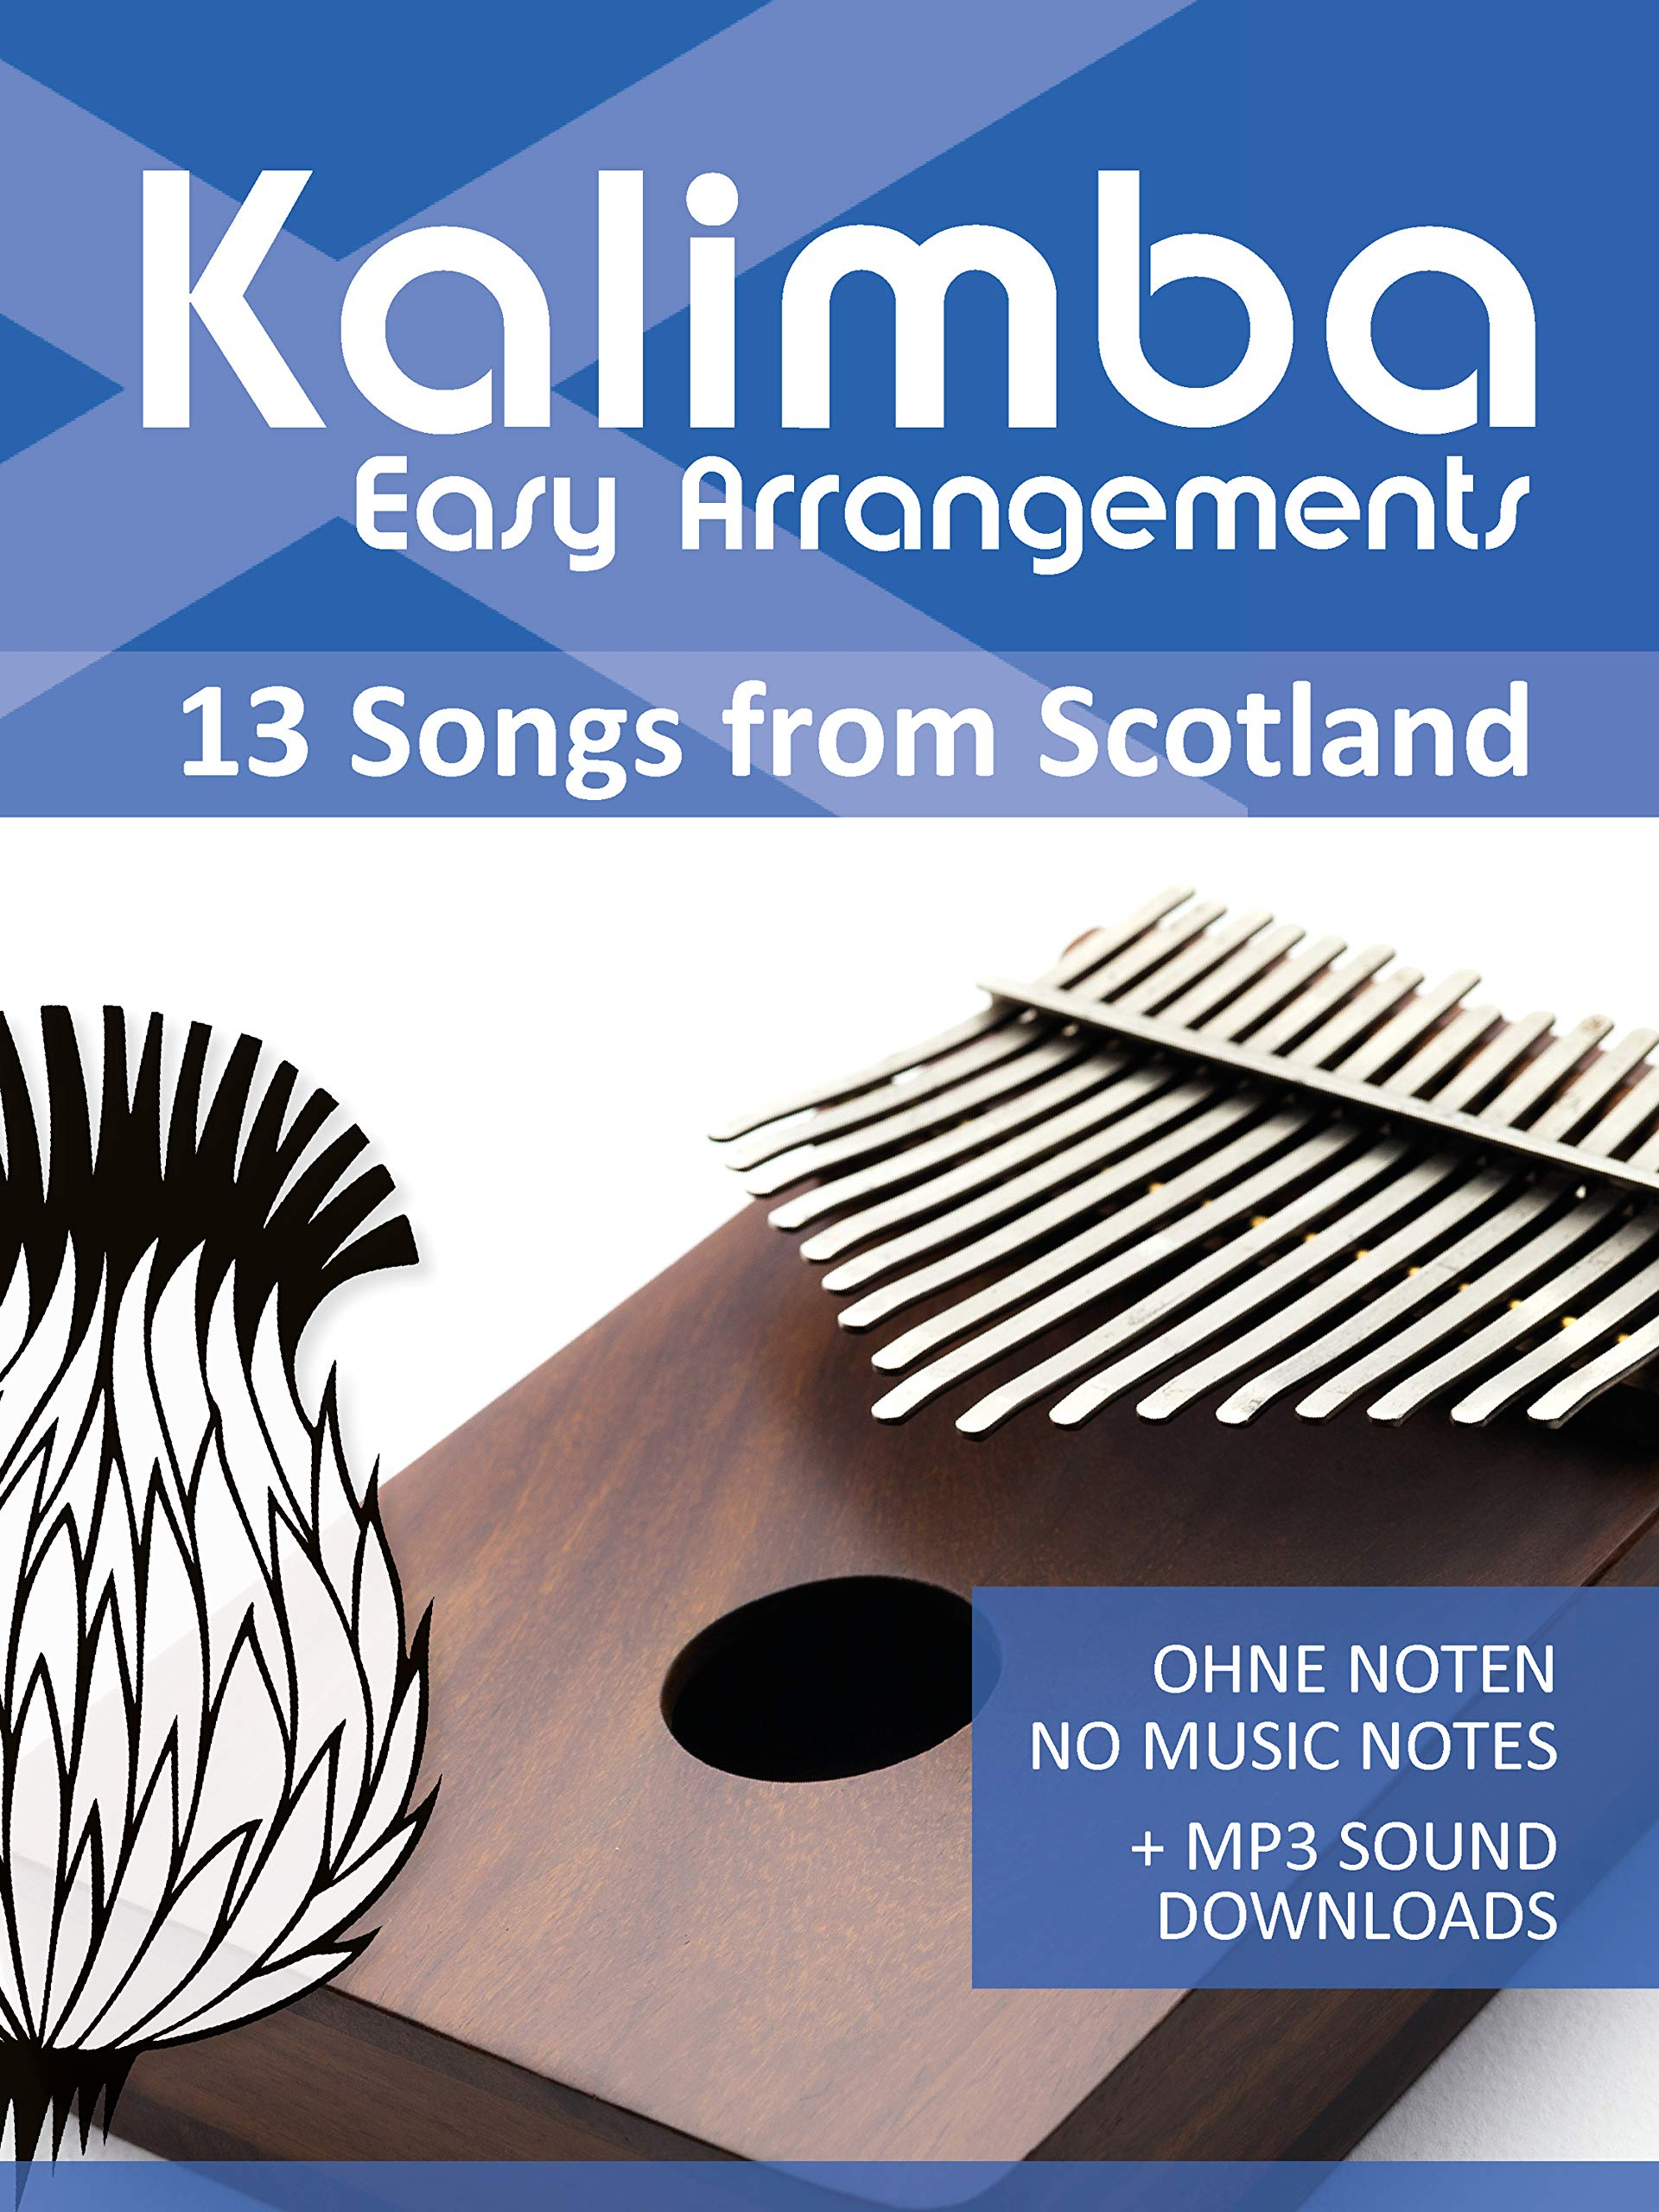 Kalimba Easy Arrangements - 13 Songs from Scotland: Ohne Noten - No Music Notes + MP3-Sound Downloads (Kalimba Songbooks Book 21)